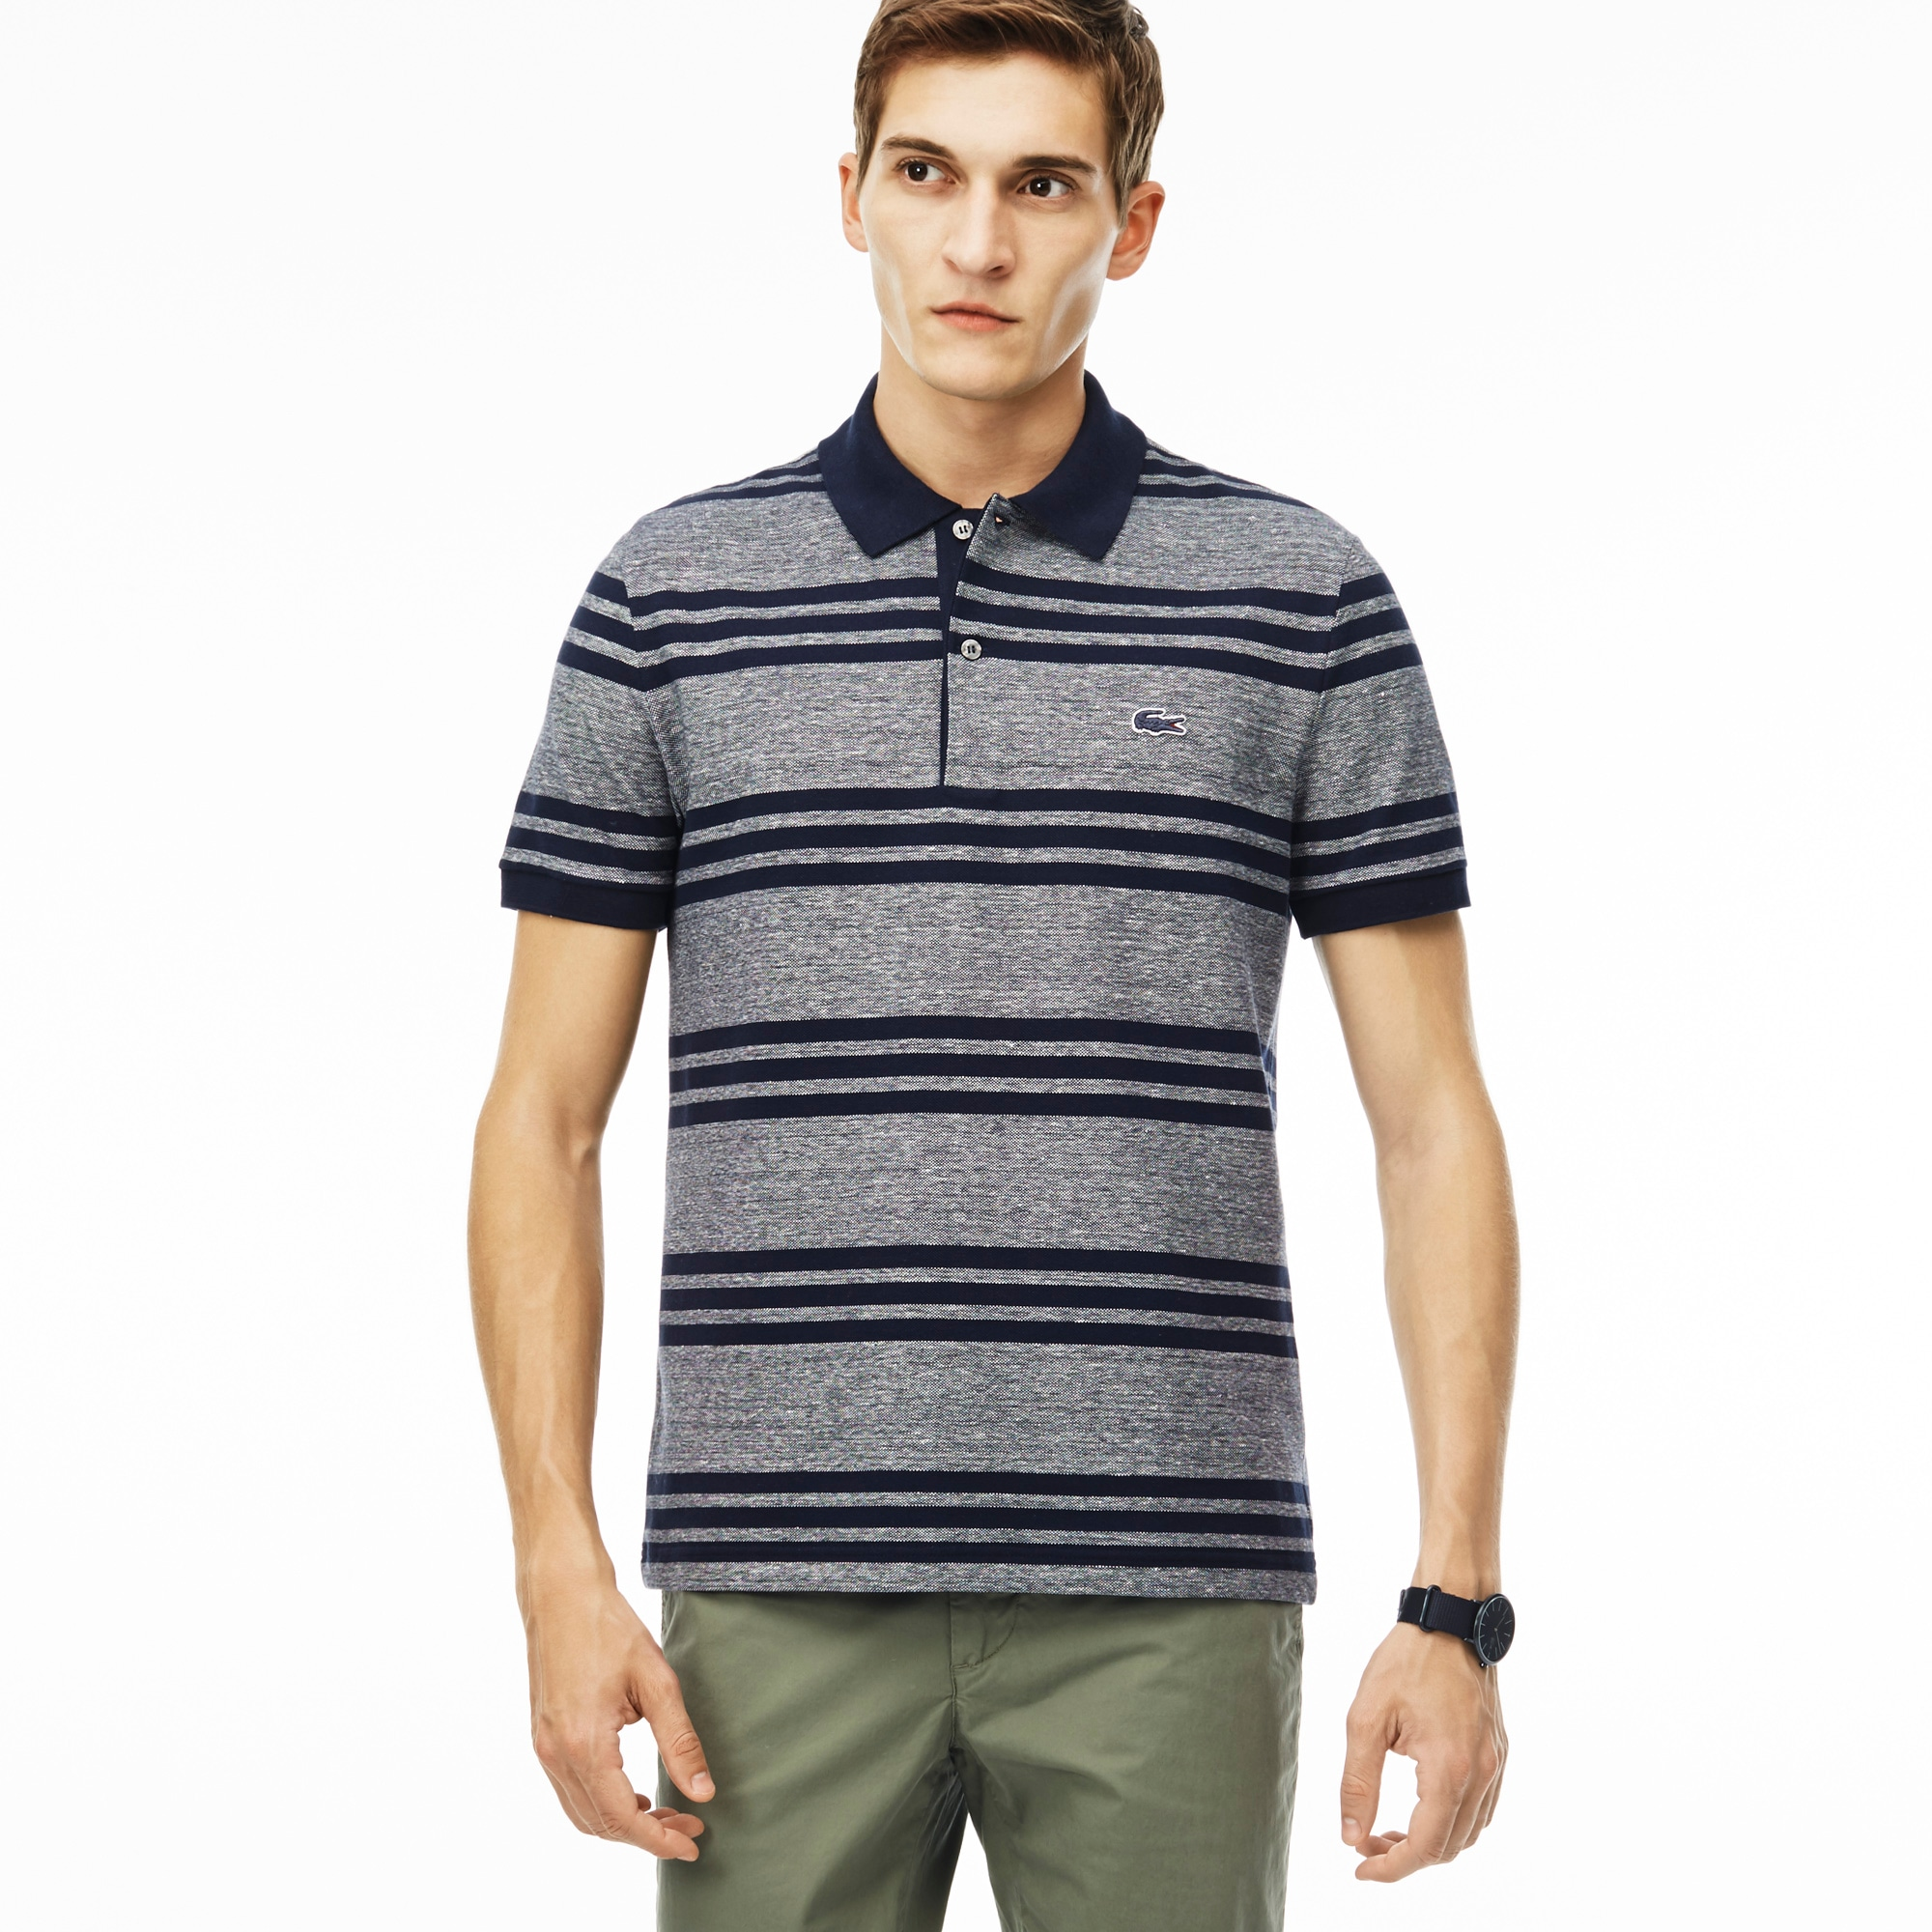 Polo shirts men 39 s lacoste polos men 39 s fashion for Lacoste stripe pique polo shirt